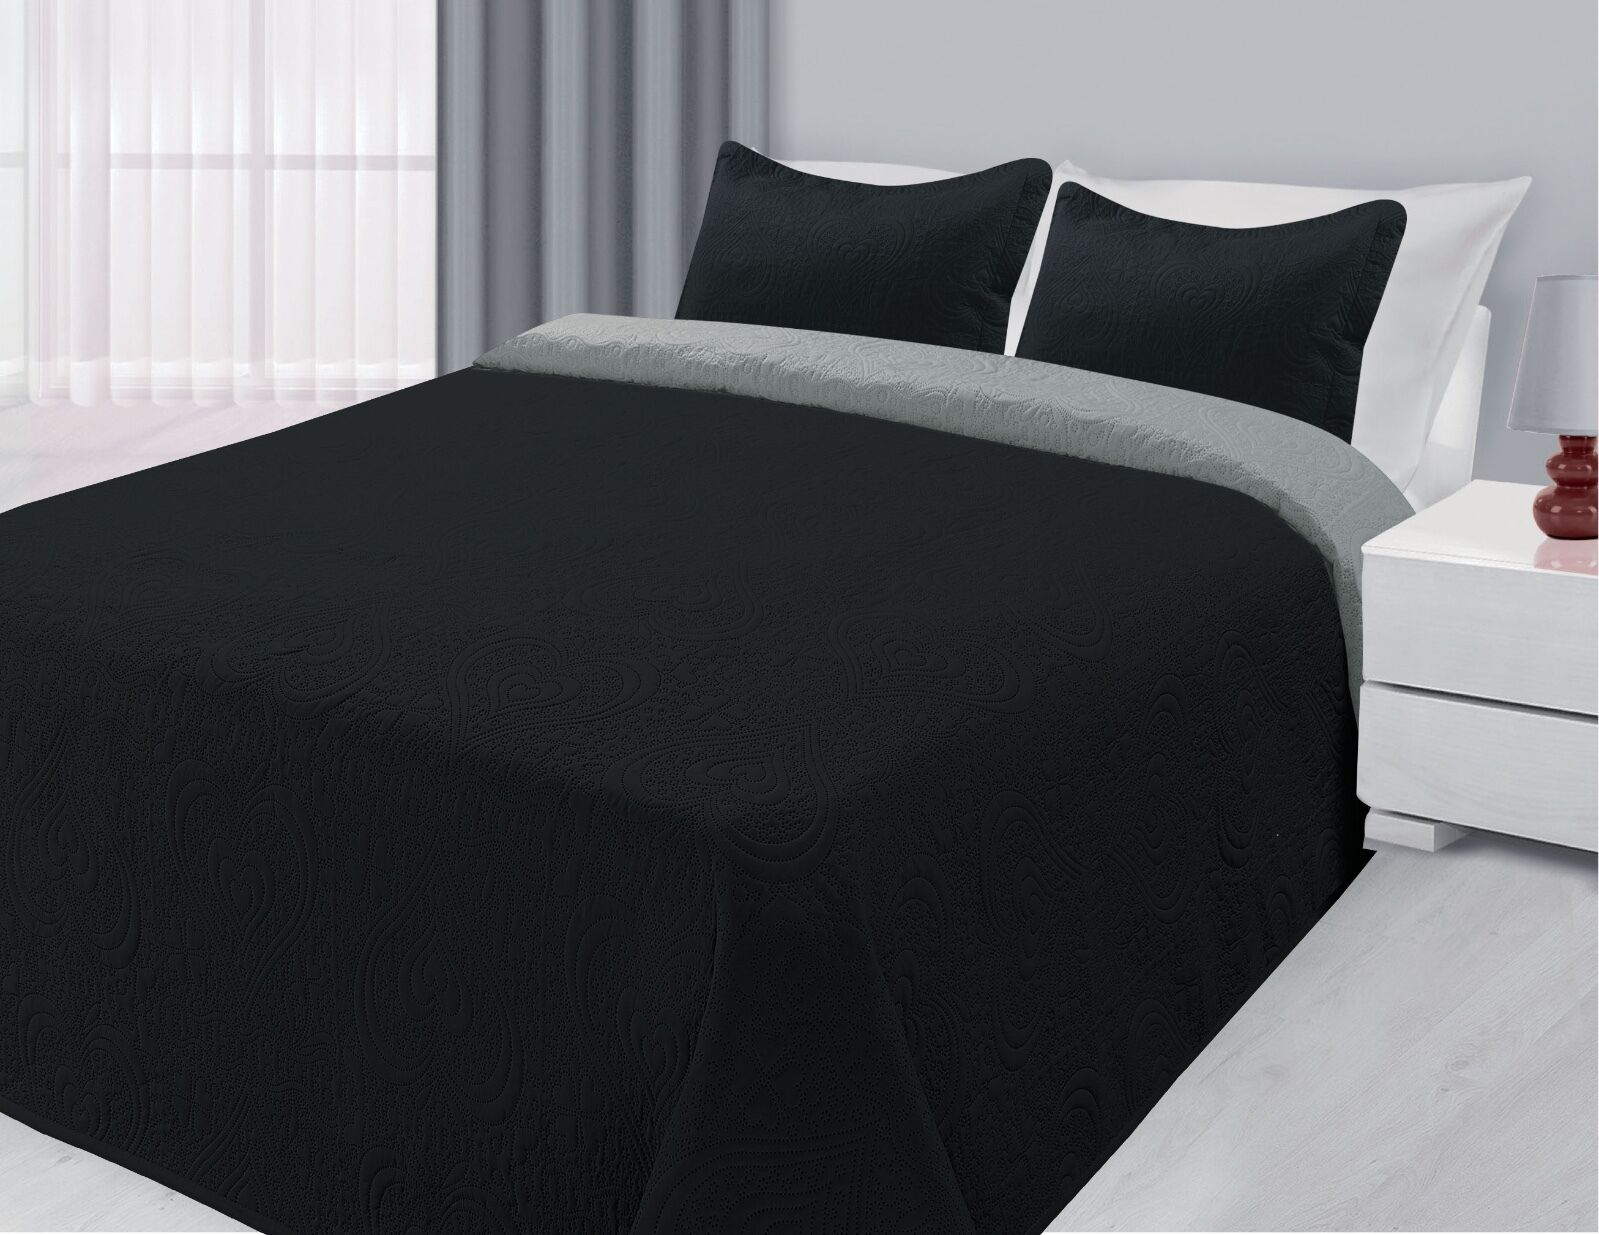 Reversible 3-Piece Solid Quilted Bedspread Coverlet Bedding Set - Black & Silver